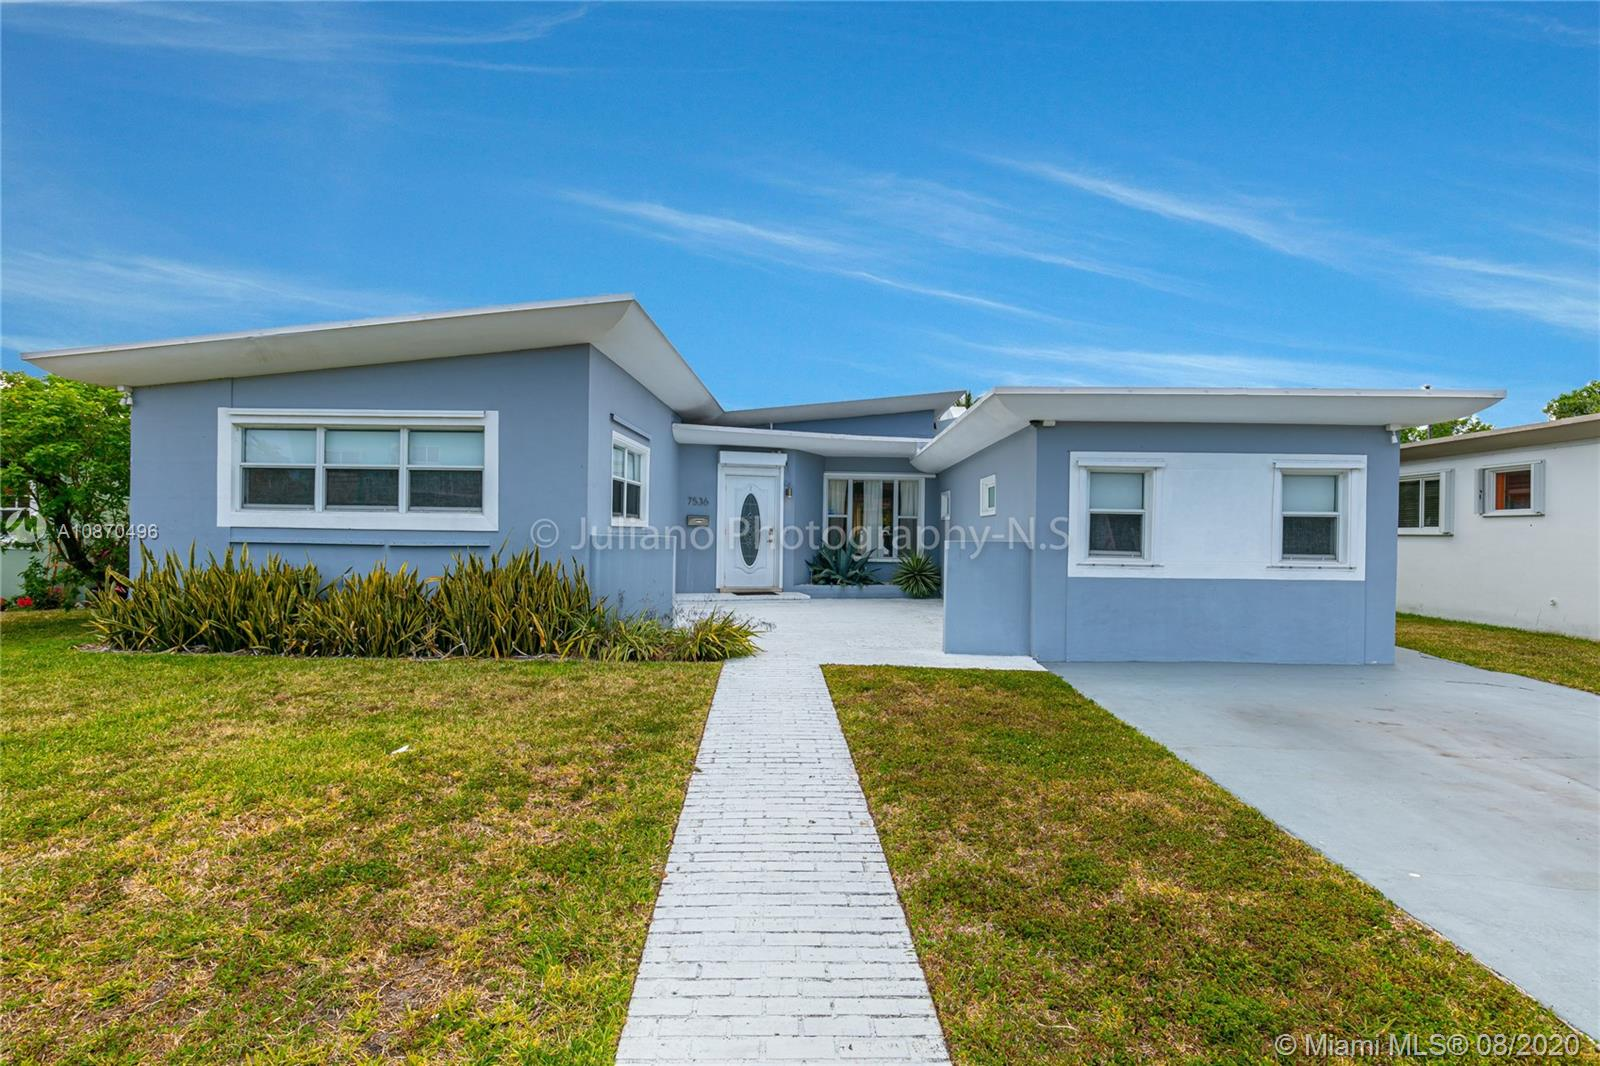 7536  Bounty Ave  For Sale A10870496, FL